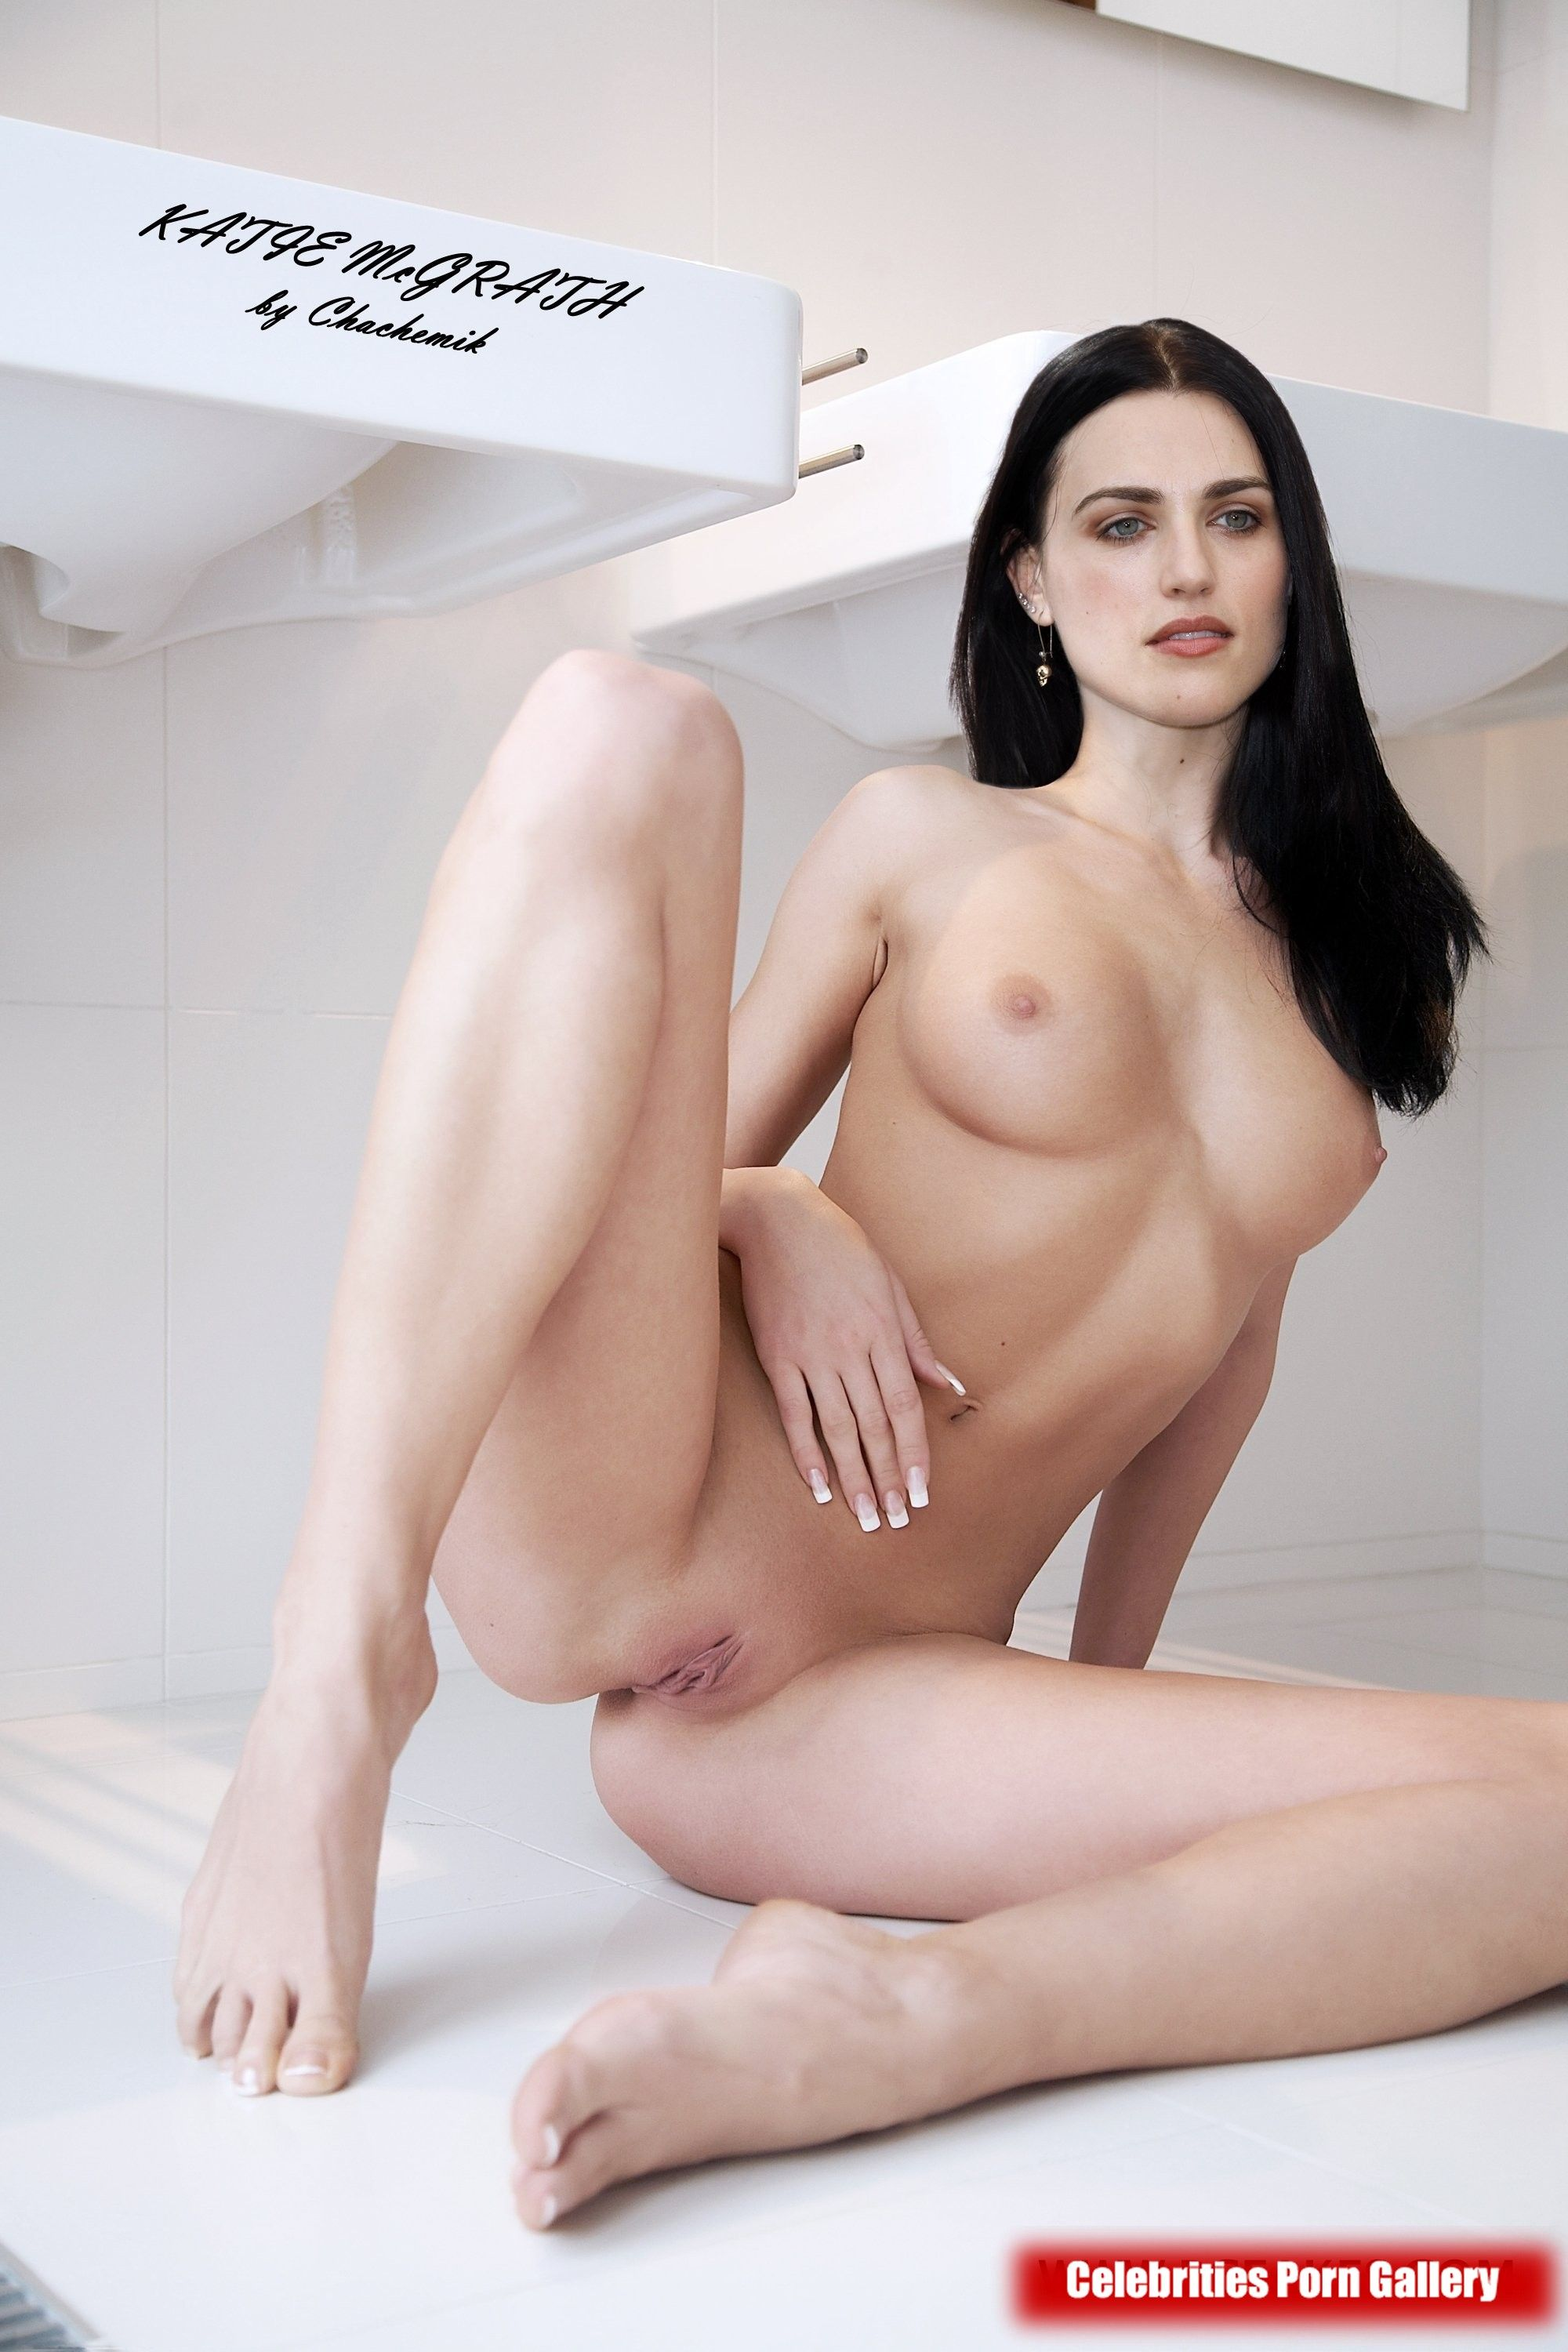 Katie mcgrath nude photos really. All